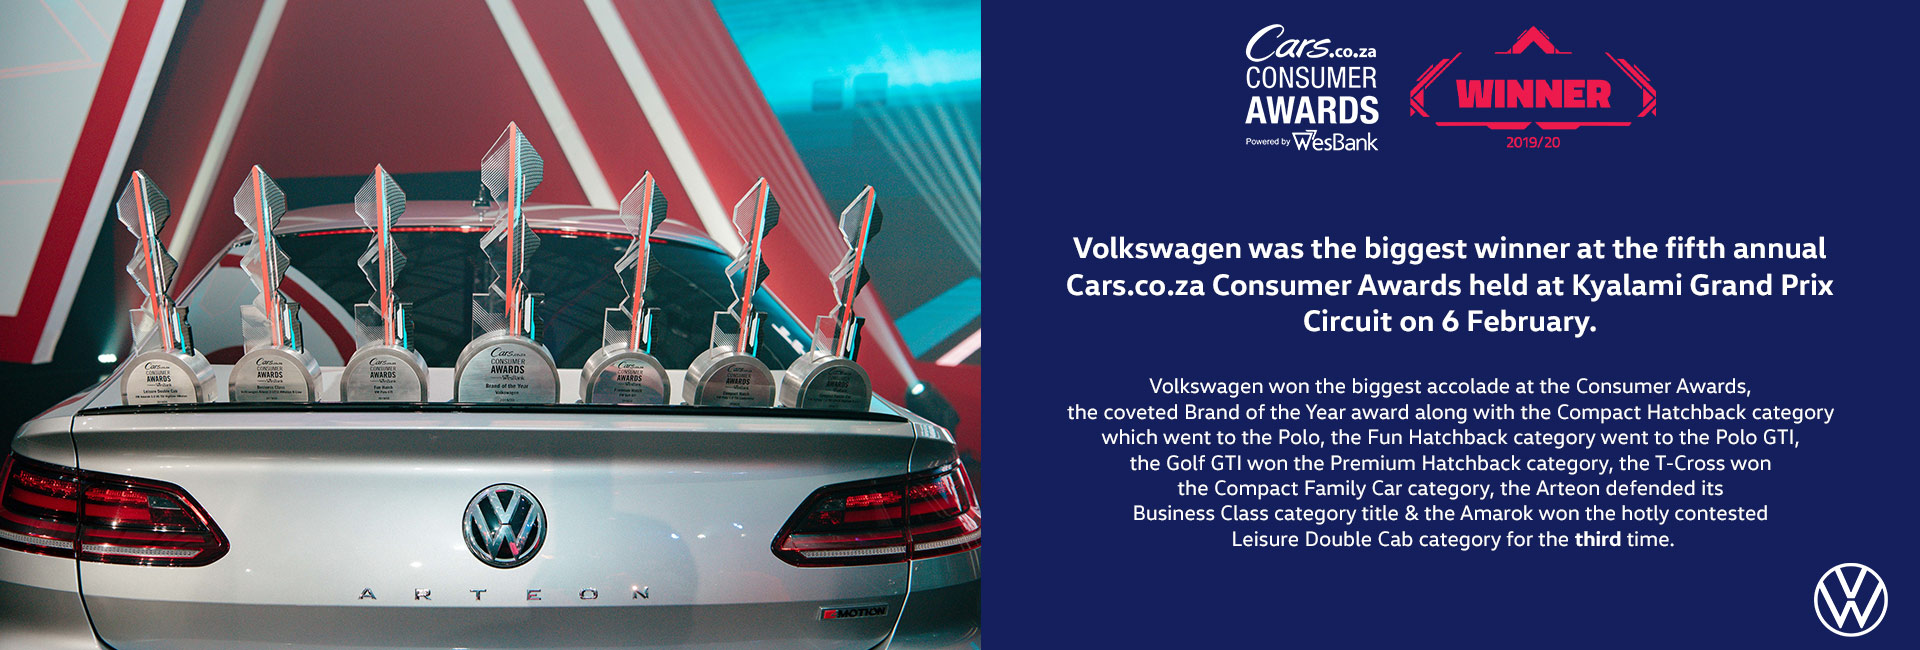 VW Car Awards